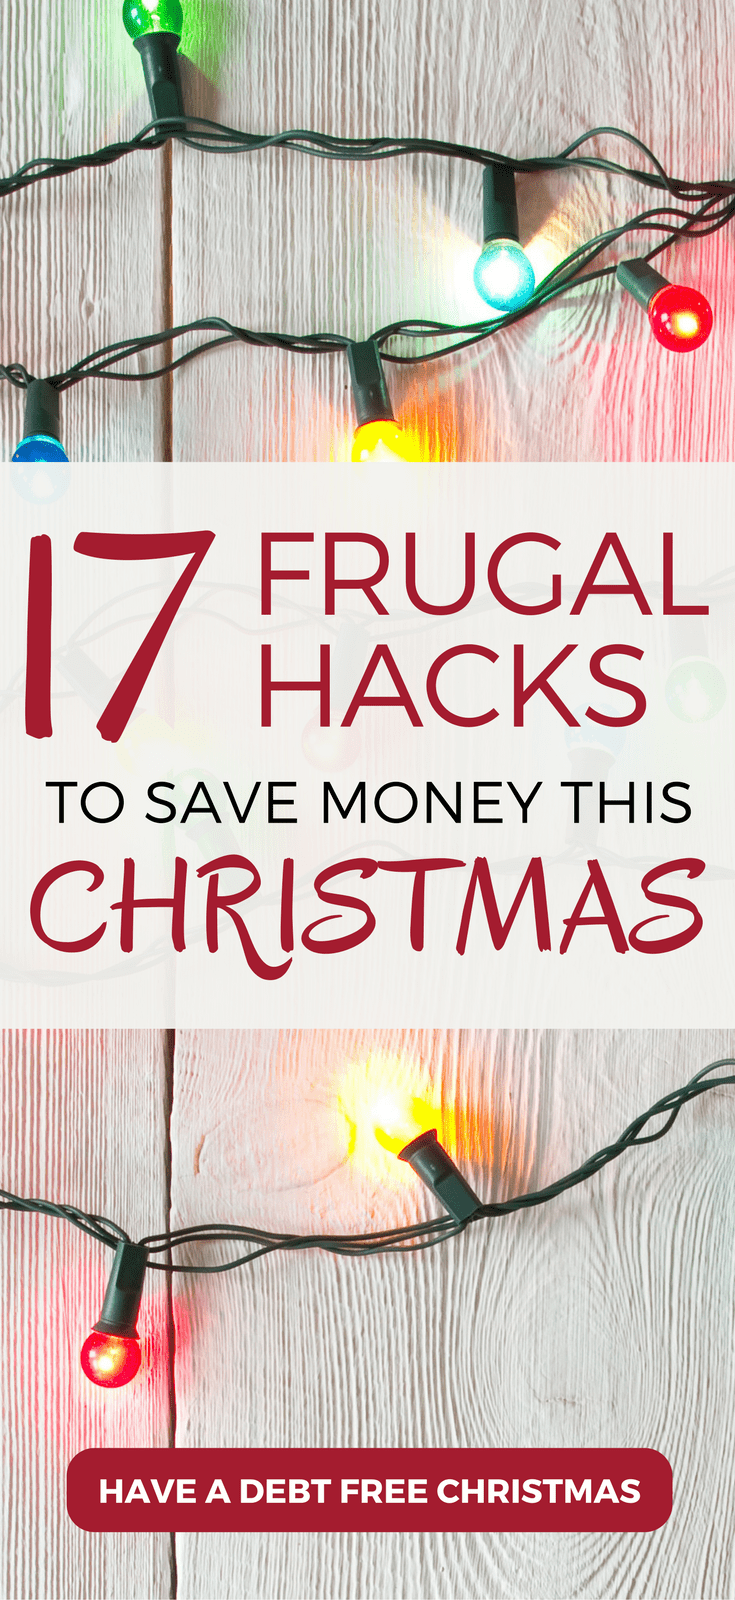 CHECK OUT these frugal hacks, simple tips, tricks, ideas, and strategies to save money this Christmas. Learn how to stick to a Christmas and Holiday budget, maximize your cash back, and have a robot save you money. Give your family the Christmas they deserve with these frugal but easy strategies. 